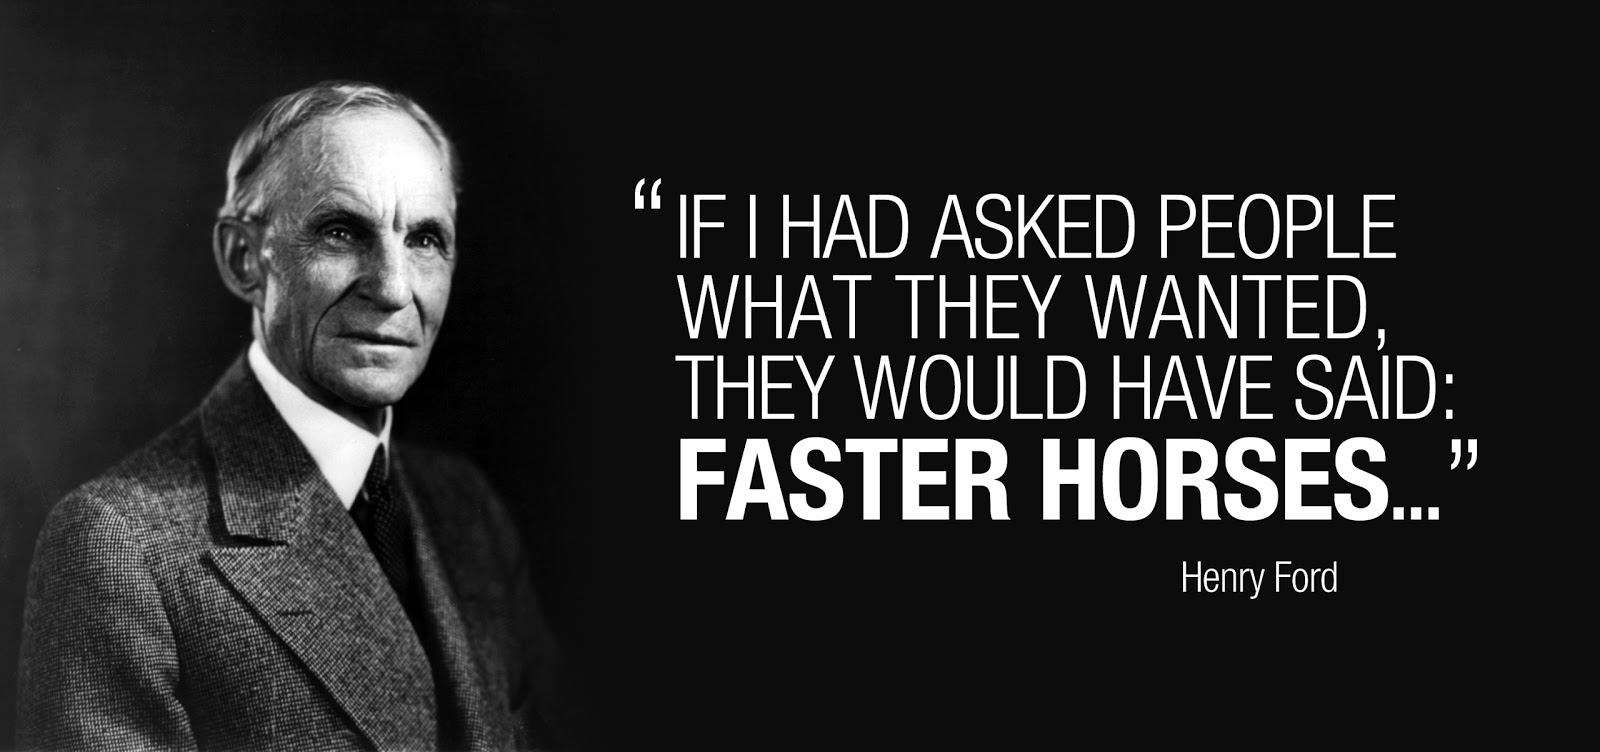 Bootstrap Business: 8 Great Henry Ford Business Quotes